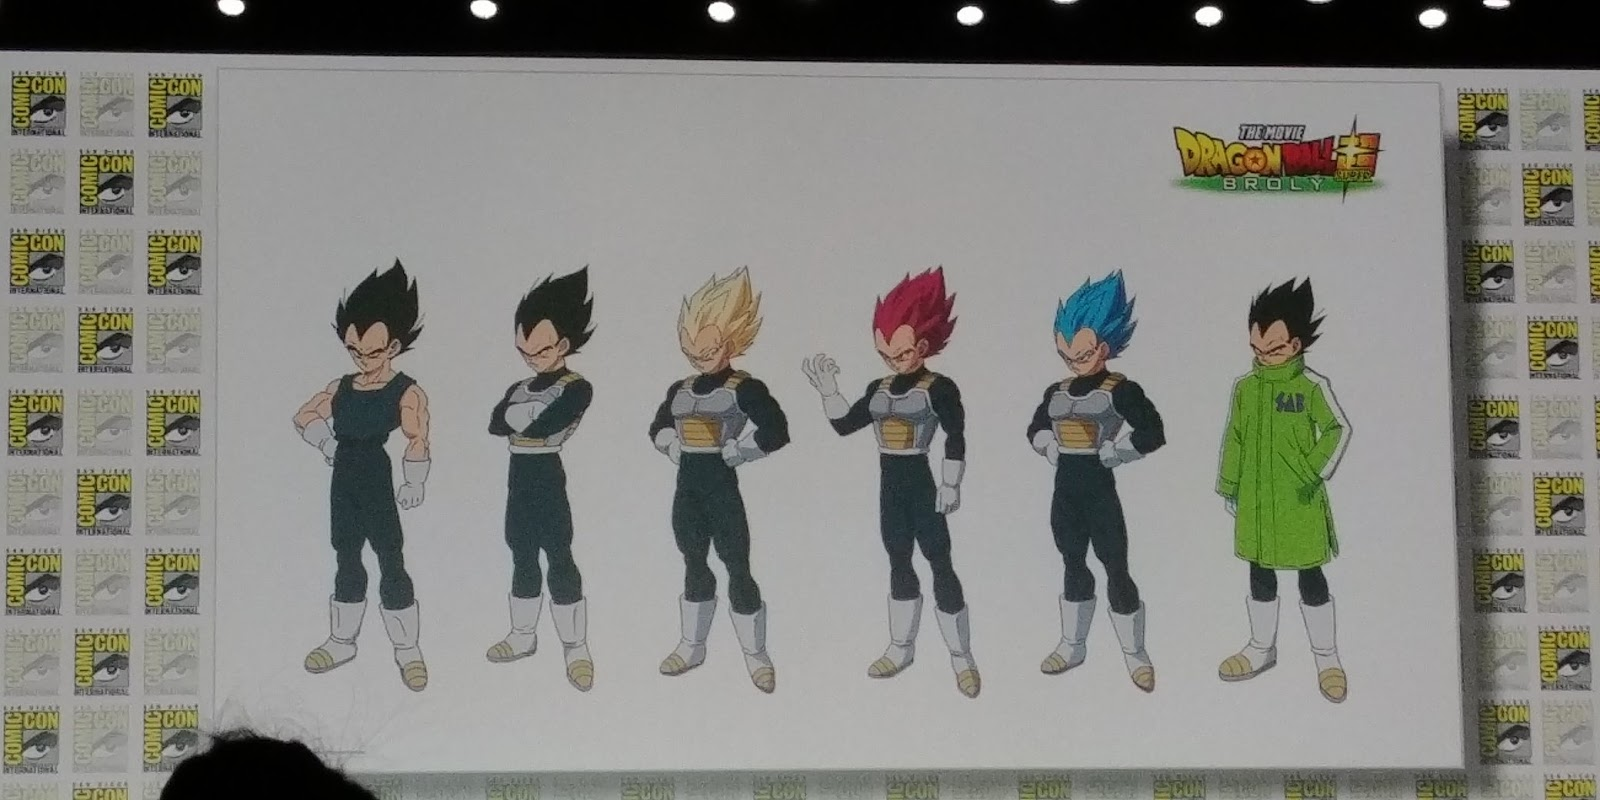 Diseño personaje Vegeta 2019 - Dragon Ball Super OVA